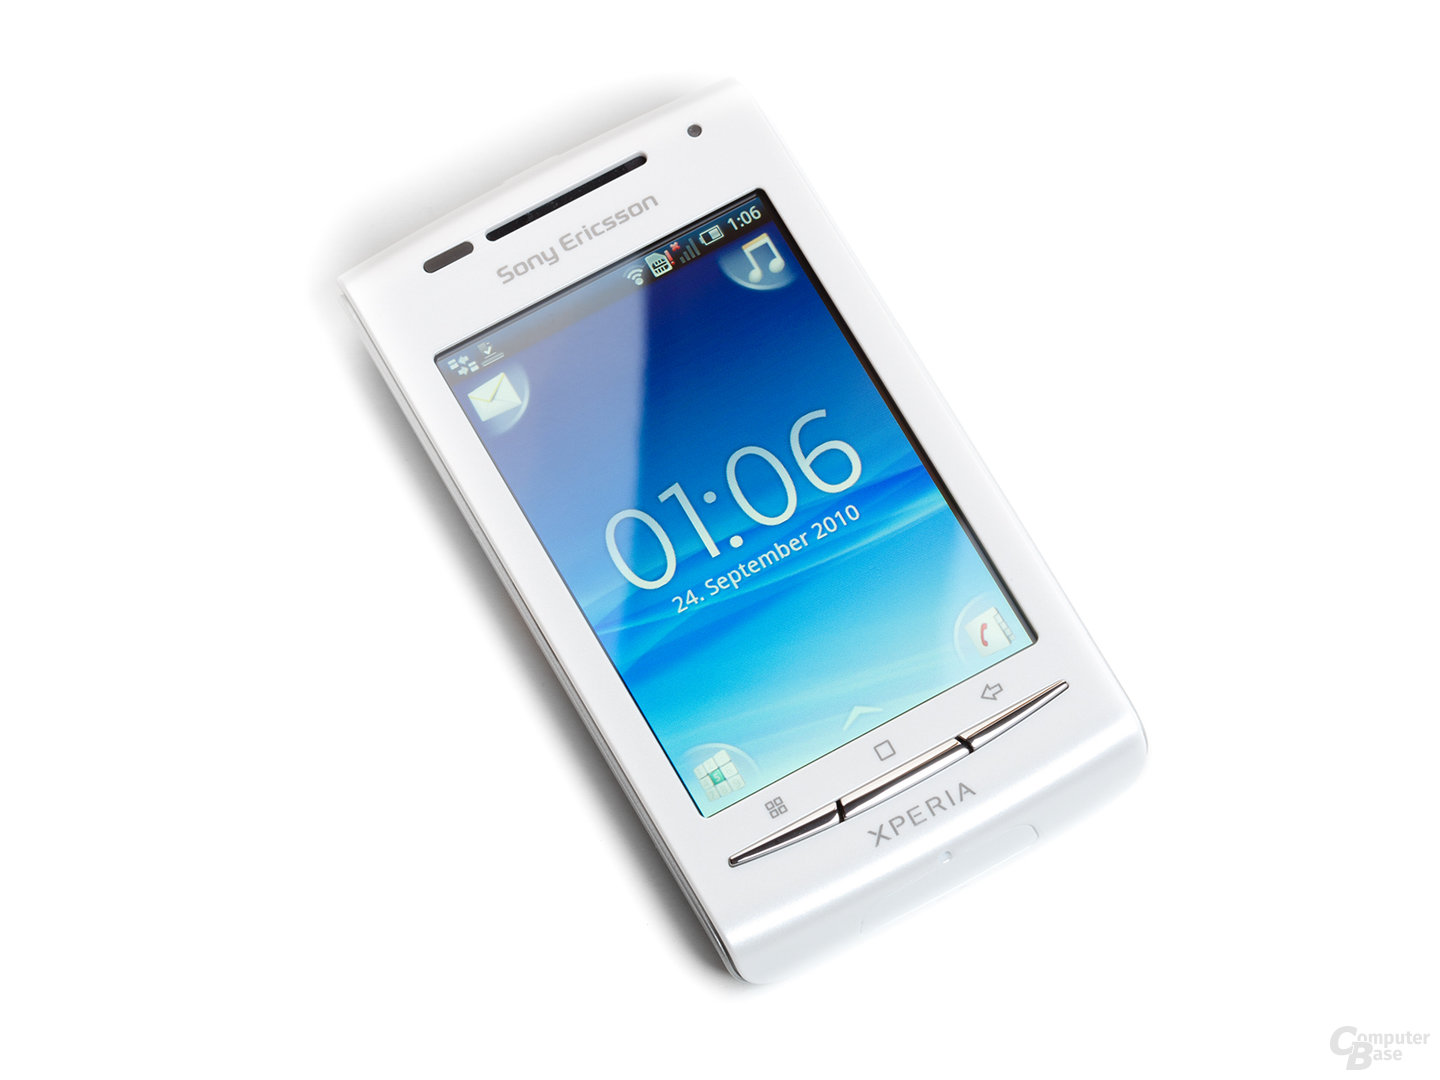 sony ericsson xperia x8 im test android smartphone f r. Black Bedroom Furniture Sets. Home Design Ideas